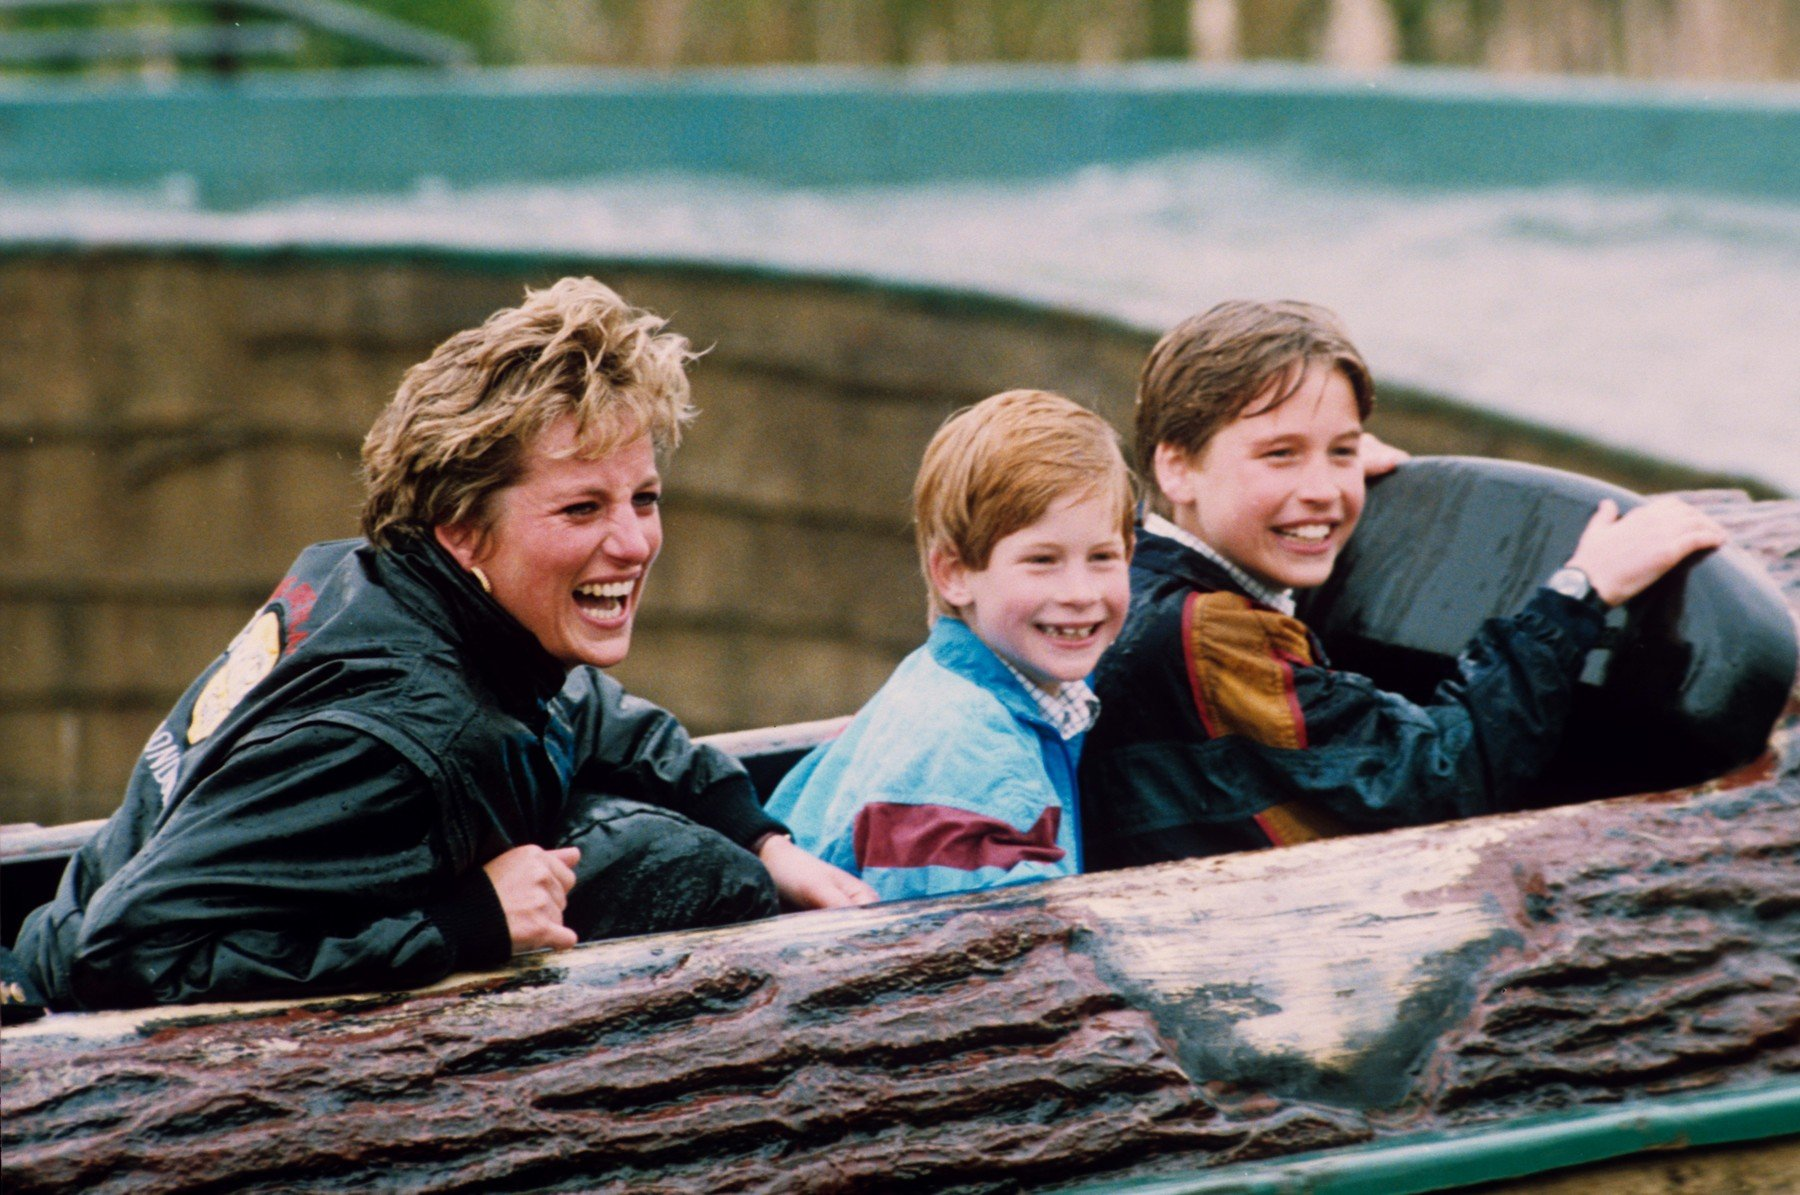 PRINCESS DIANA AND SONS, PRINCES WILLIAM AND HARRY ON A WATER RIDE AT THORPE PARK PRINCESS DIANA AT THORPE PARK, BRITAIN - ARP 1993, Image: 230962043, License: Rights-managed, Restrictions: , Model Release: no, Credit line: Profimedia, TEMP Rex Features